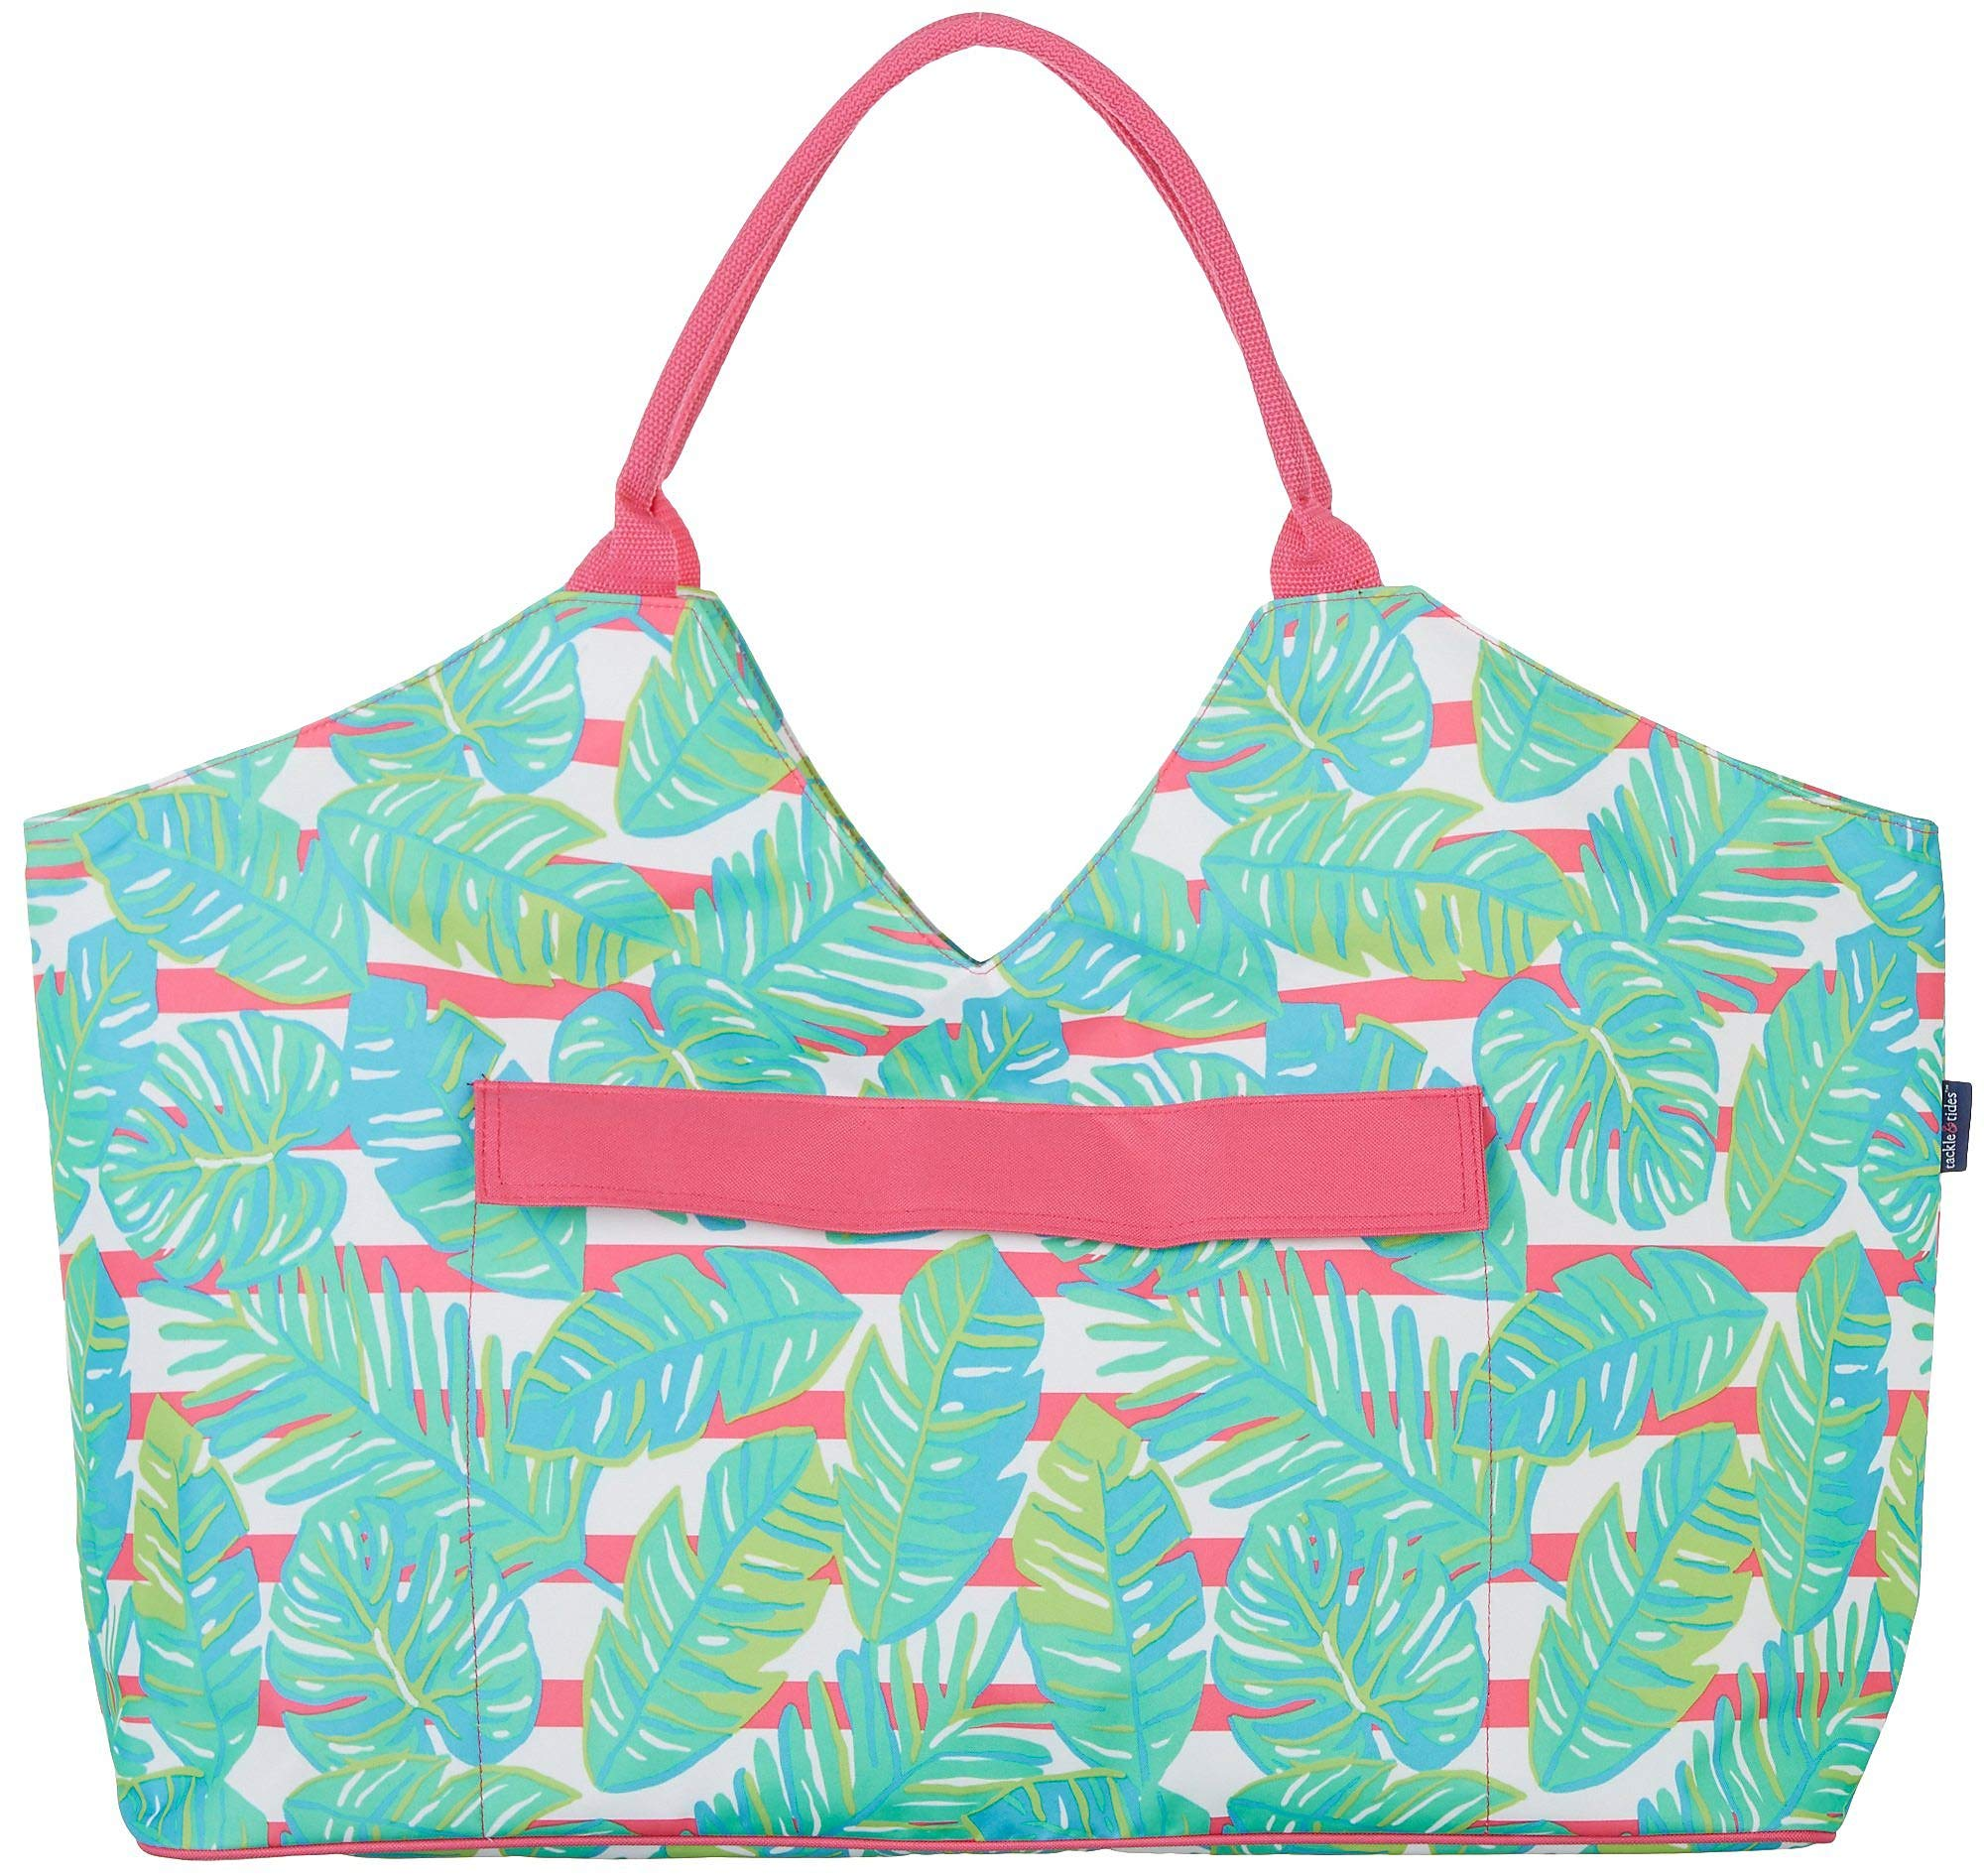 Tackle & Tides Palm Leaves Ultimate Bag One Size Green/Pink/White